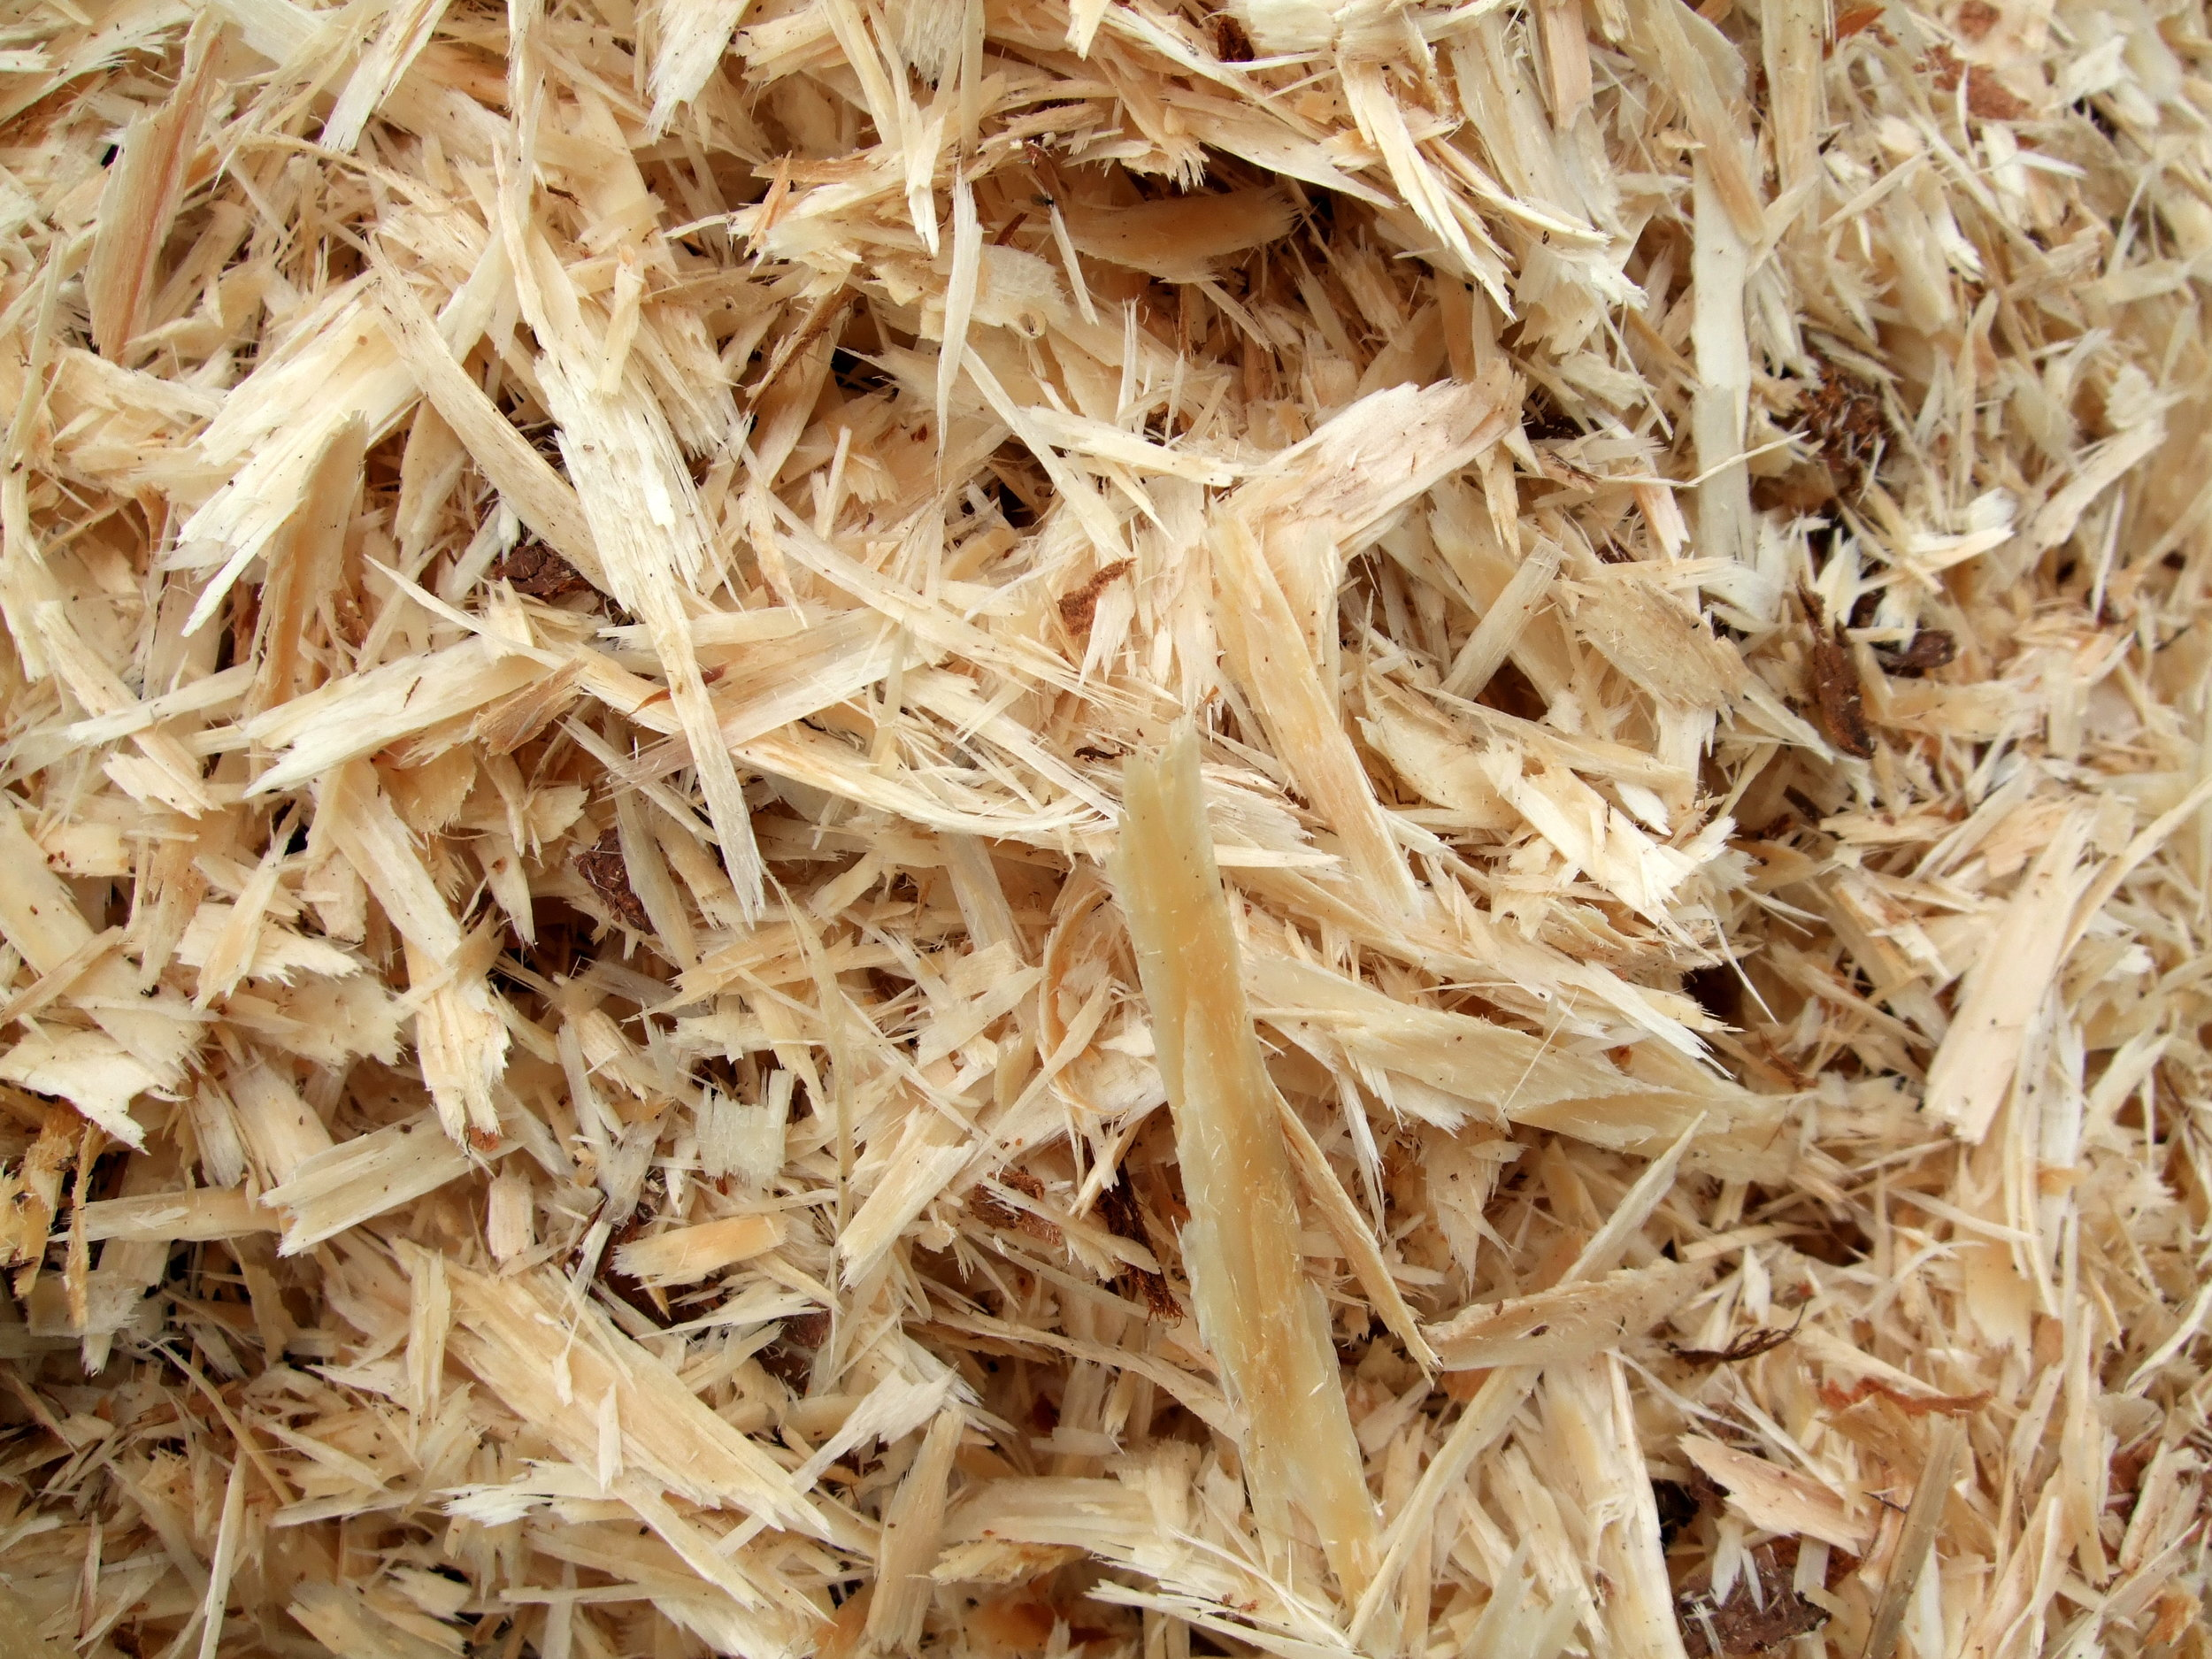 Viscose is one type of fabric that is made from cellulose extracted from wood chips